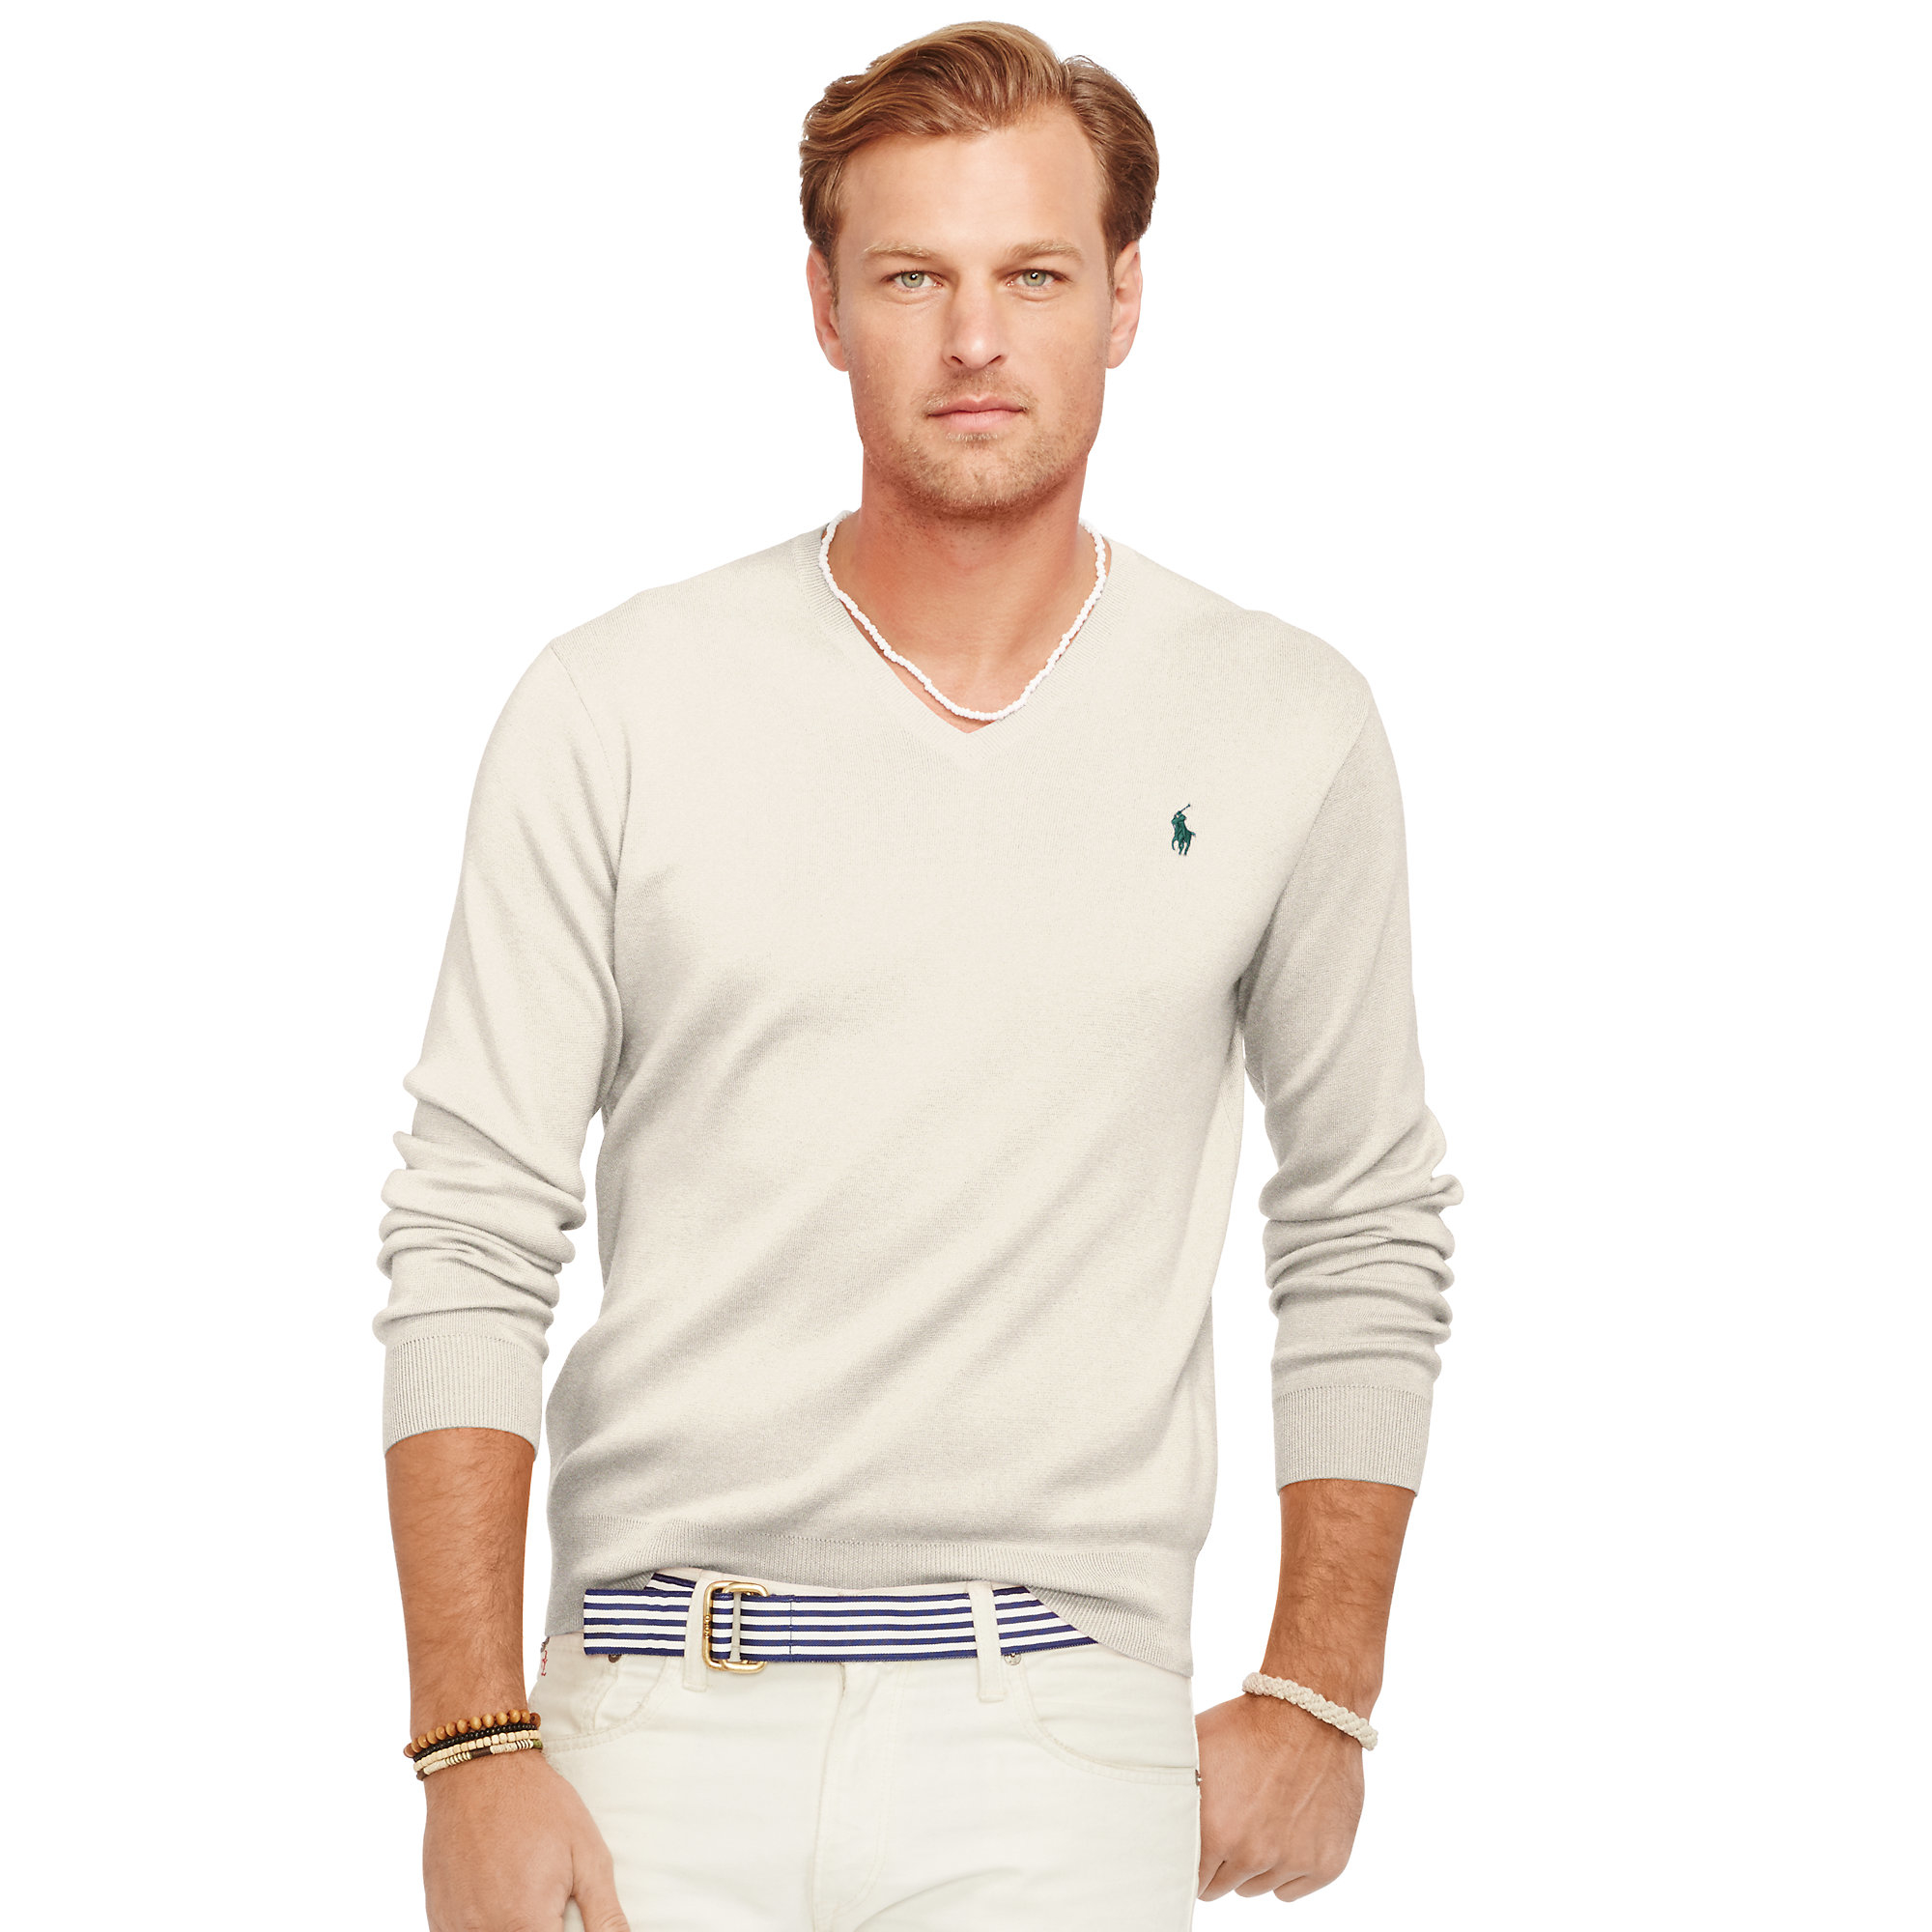 Lyst - Pink Pony Pima Cotton V-neck Sweater in White for Men eb074df5c